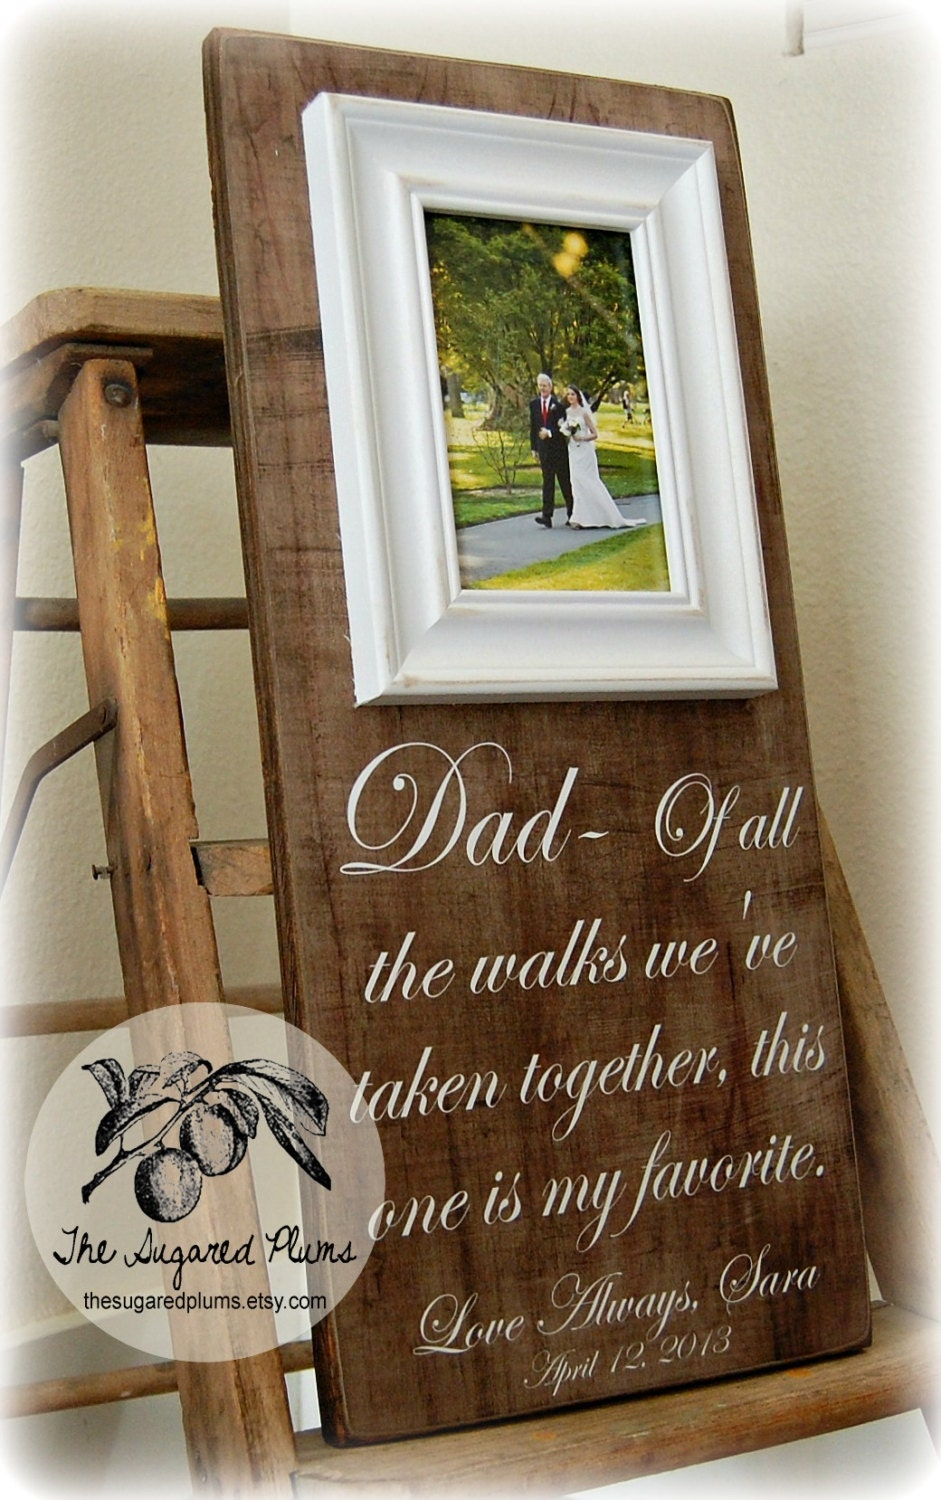 Wedding Gift Father Of Bride : favorite favorited like this item add it to your favorites to revisit ...